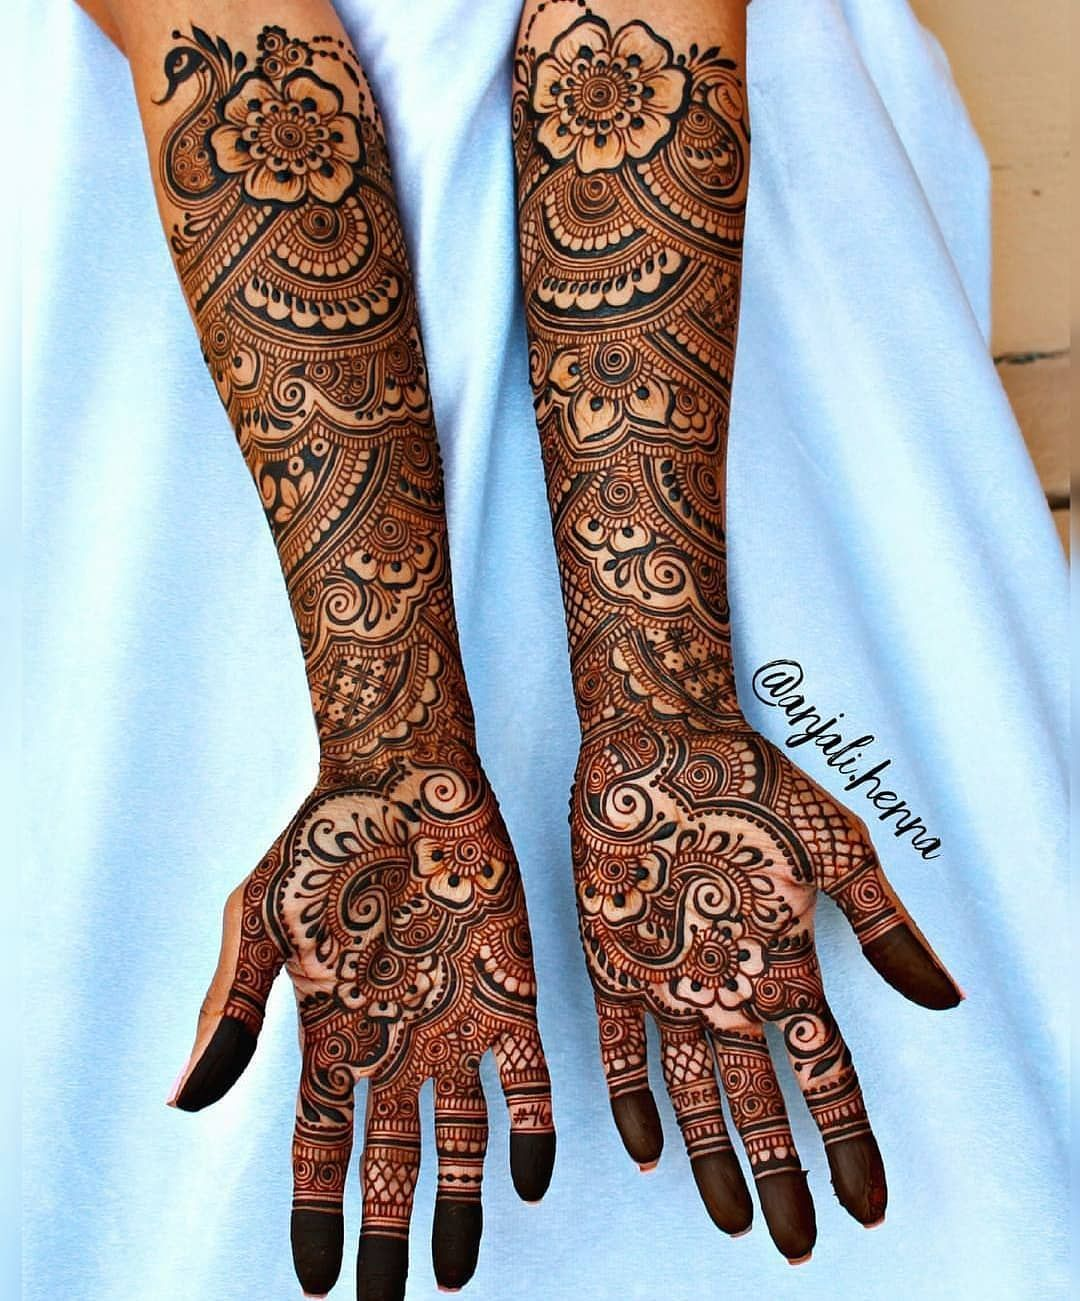 Dimple On Instagram Swipe For More Henna Designs Which One 1 10 By Anjali He Latest Bridal Mehndi Designs Indian Mehndi Designs Dulhan Mehndi Designs